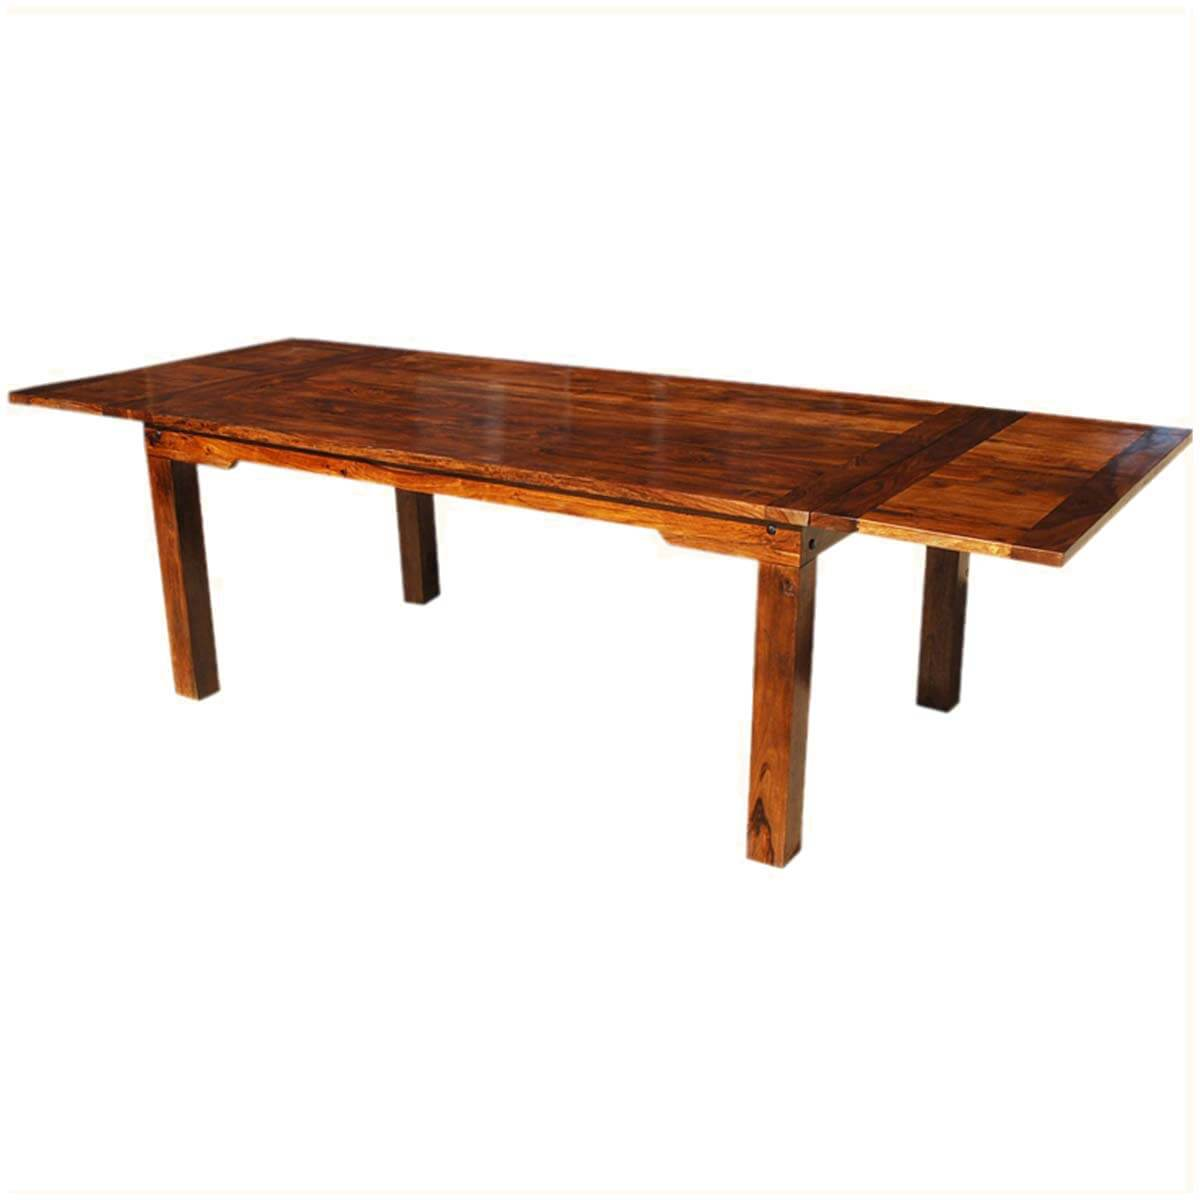 Solid Wood Dining Table ~ Solid wood transitional rustic dining table w extensions